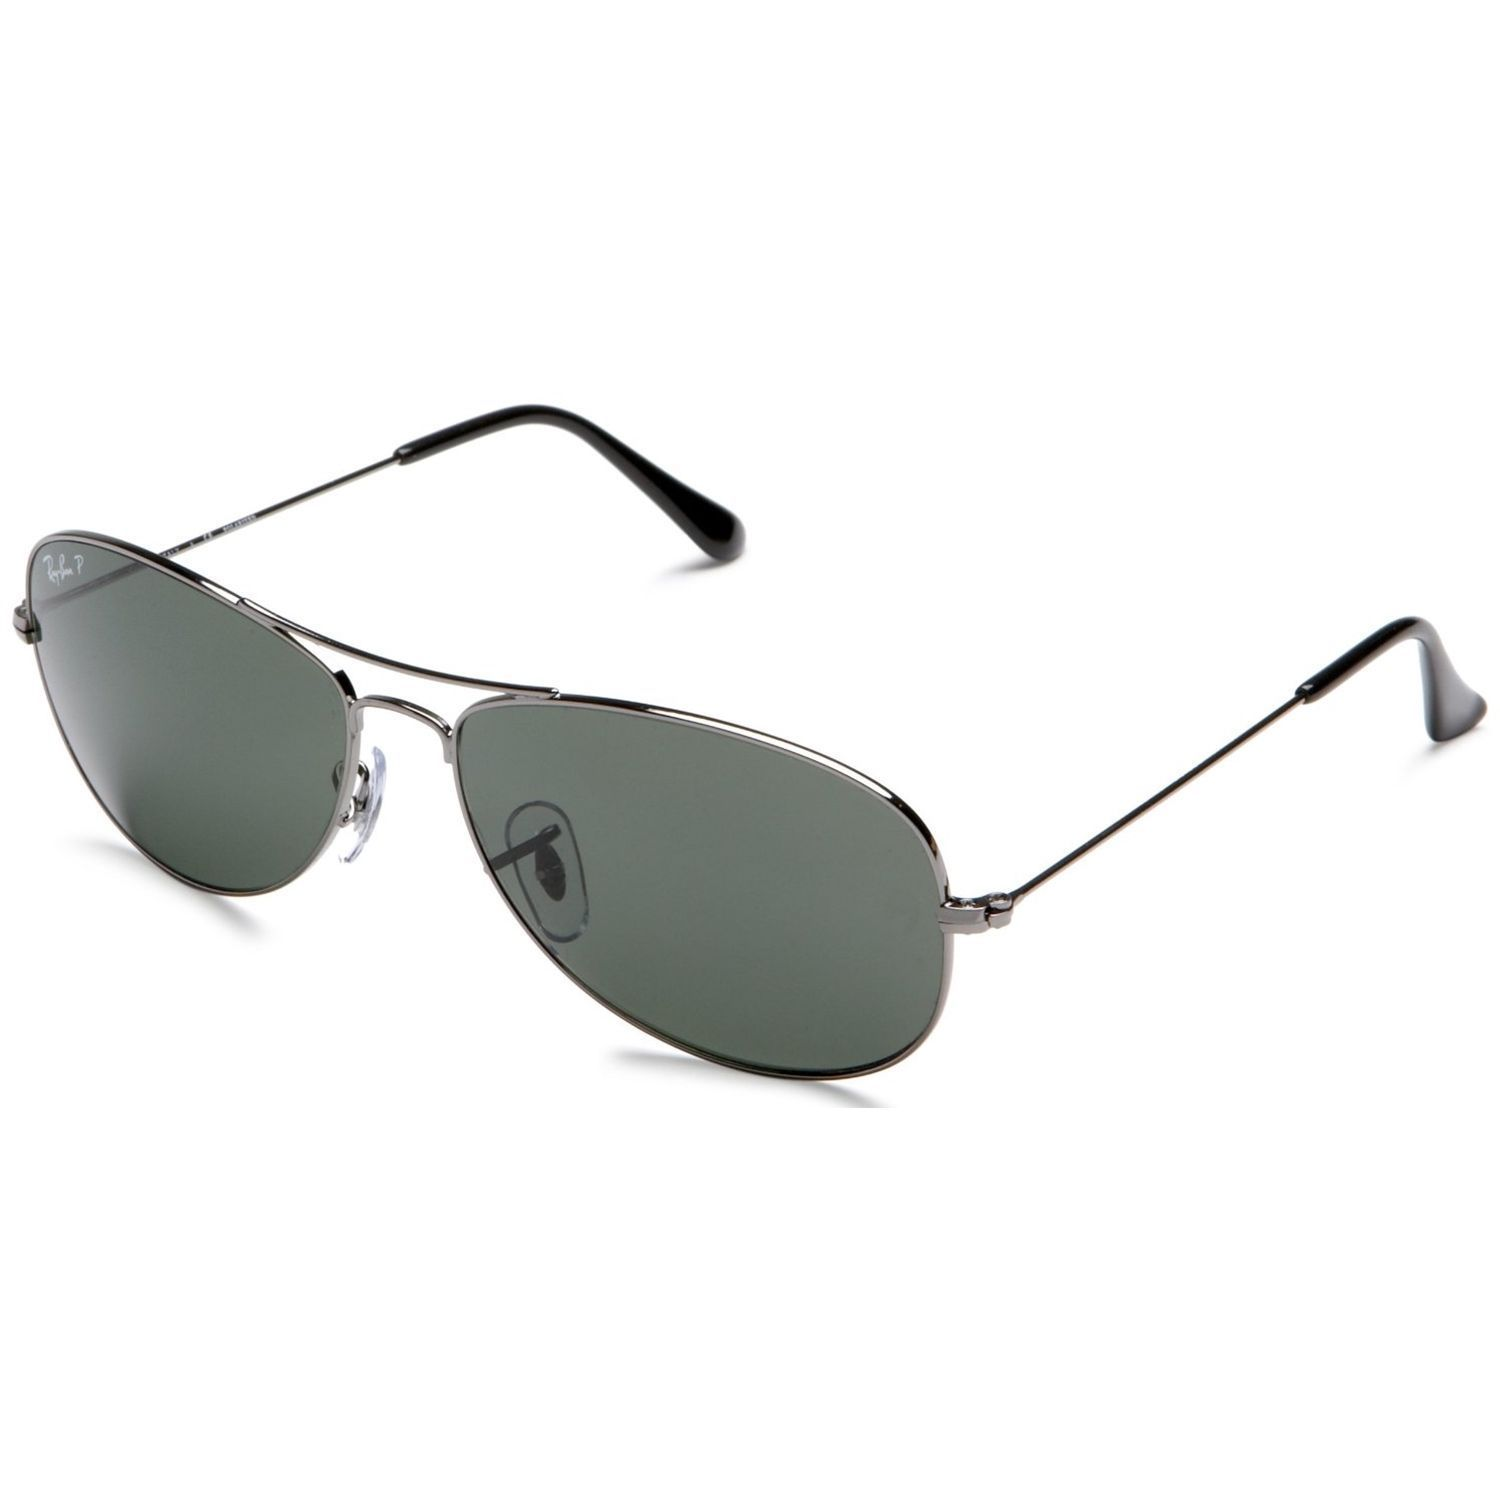 28c704ca06 Ray-Ban RB3362 004 58 Cockpit Gunmetal Frame Polarized Green 59mm Lens  Sunglasses